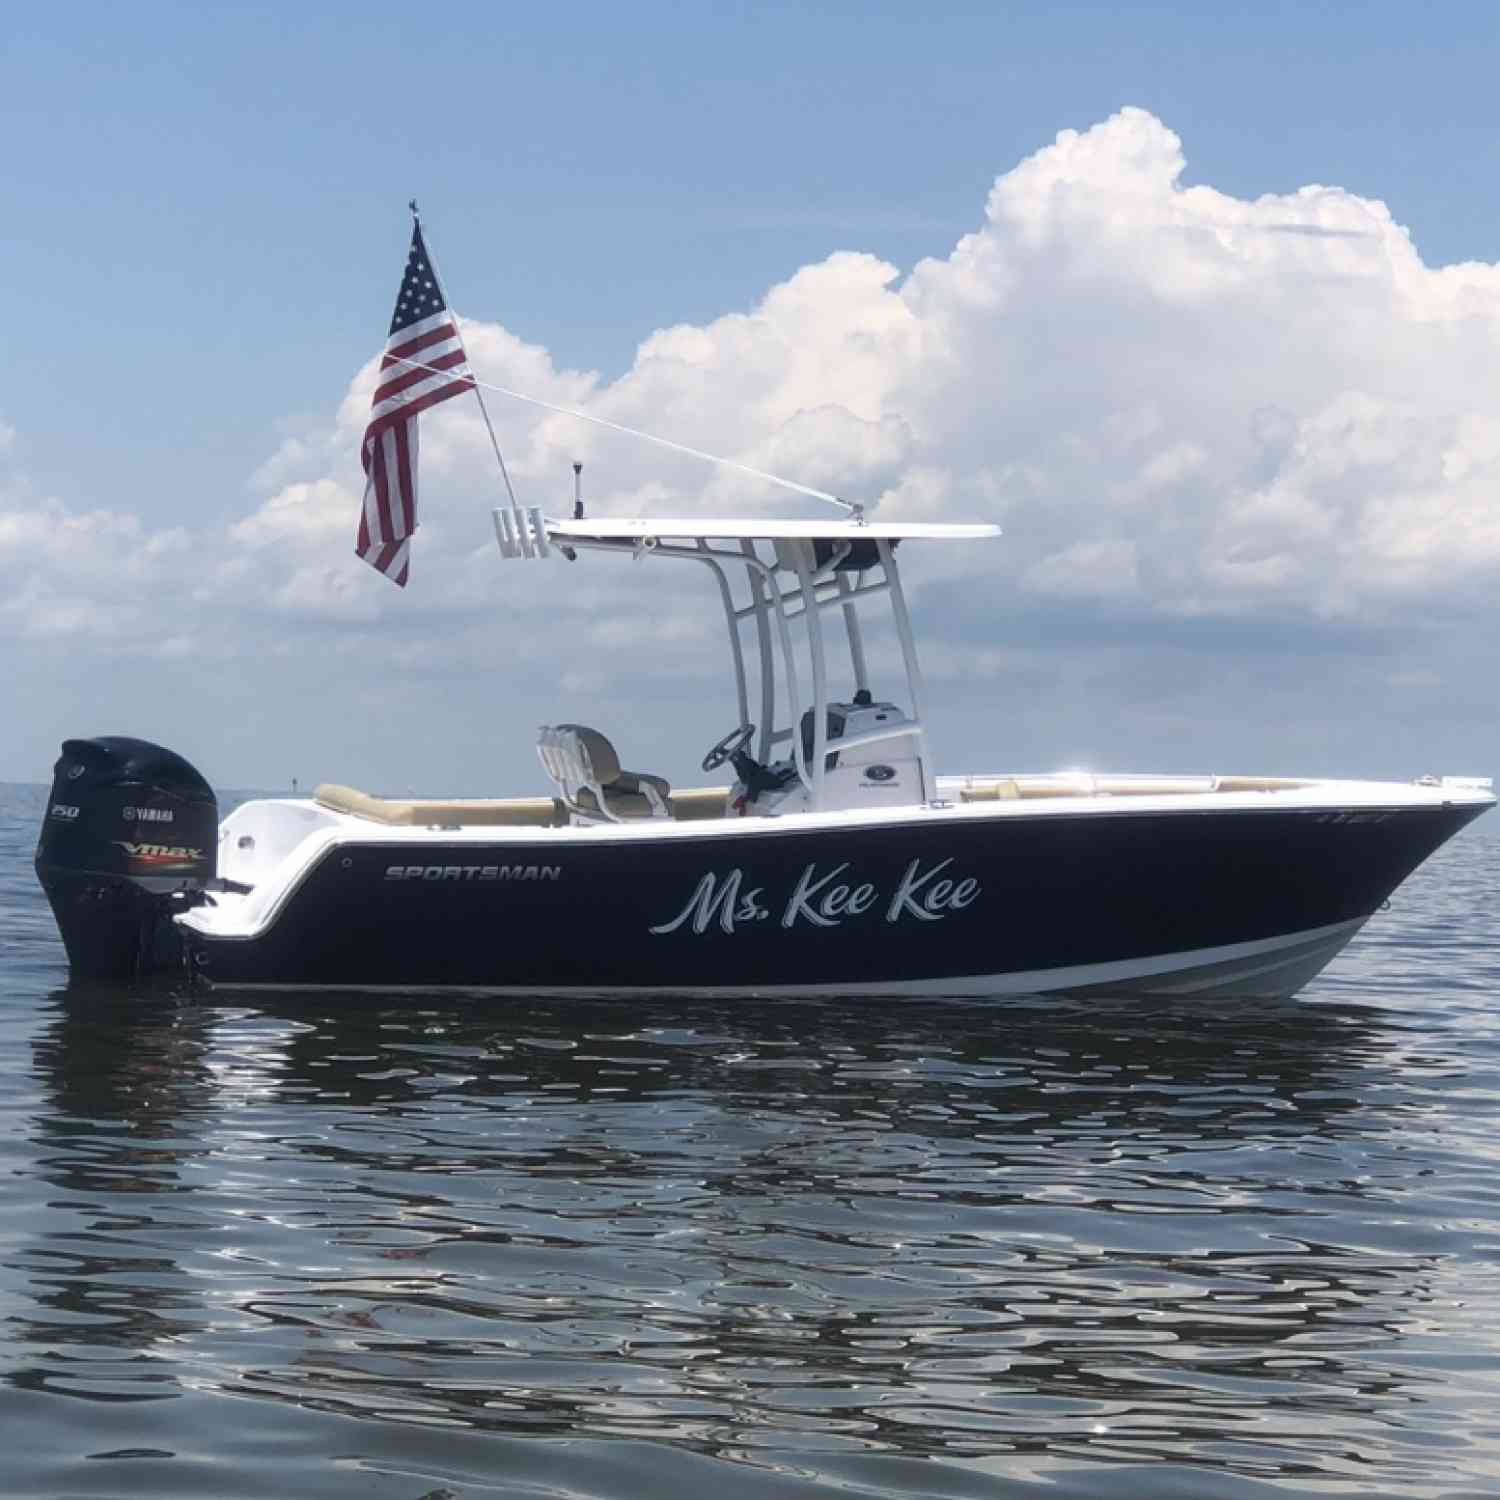 Title: Our Happy Place - On board their Sportsman Heritage 231 Center Console - Location: Ship Island. Participating in the Photo Contest #SportsmanFebruary2021